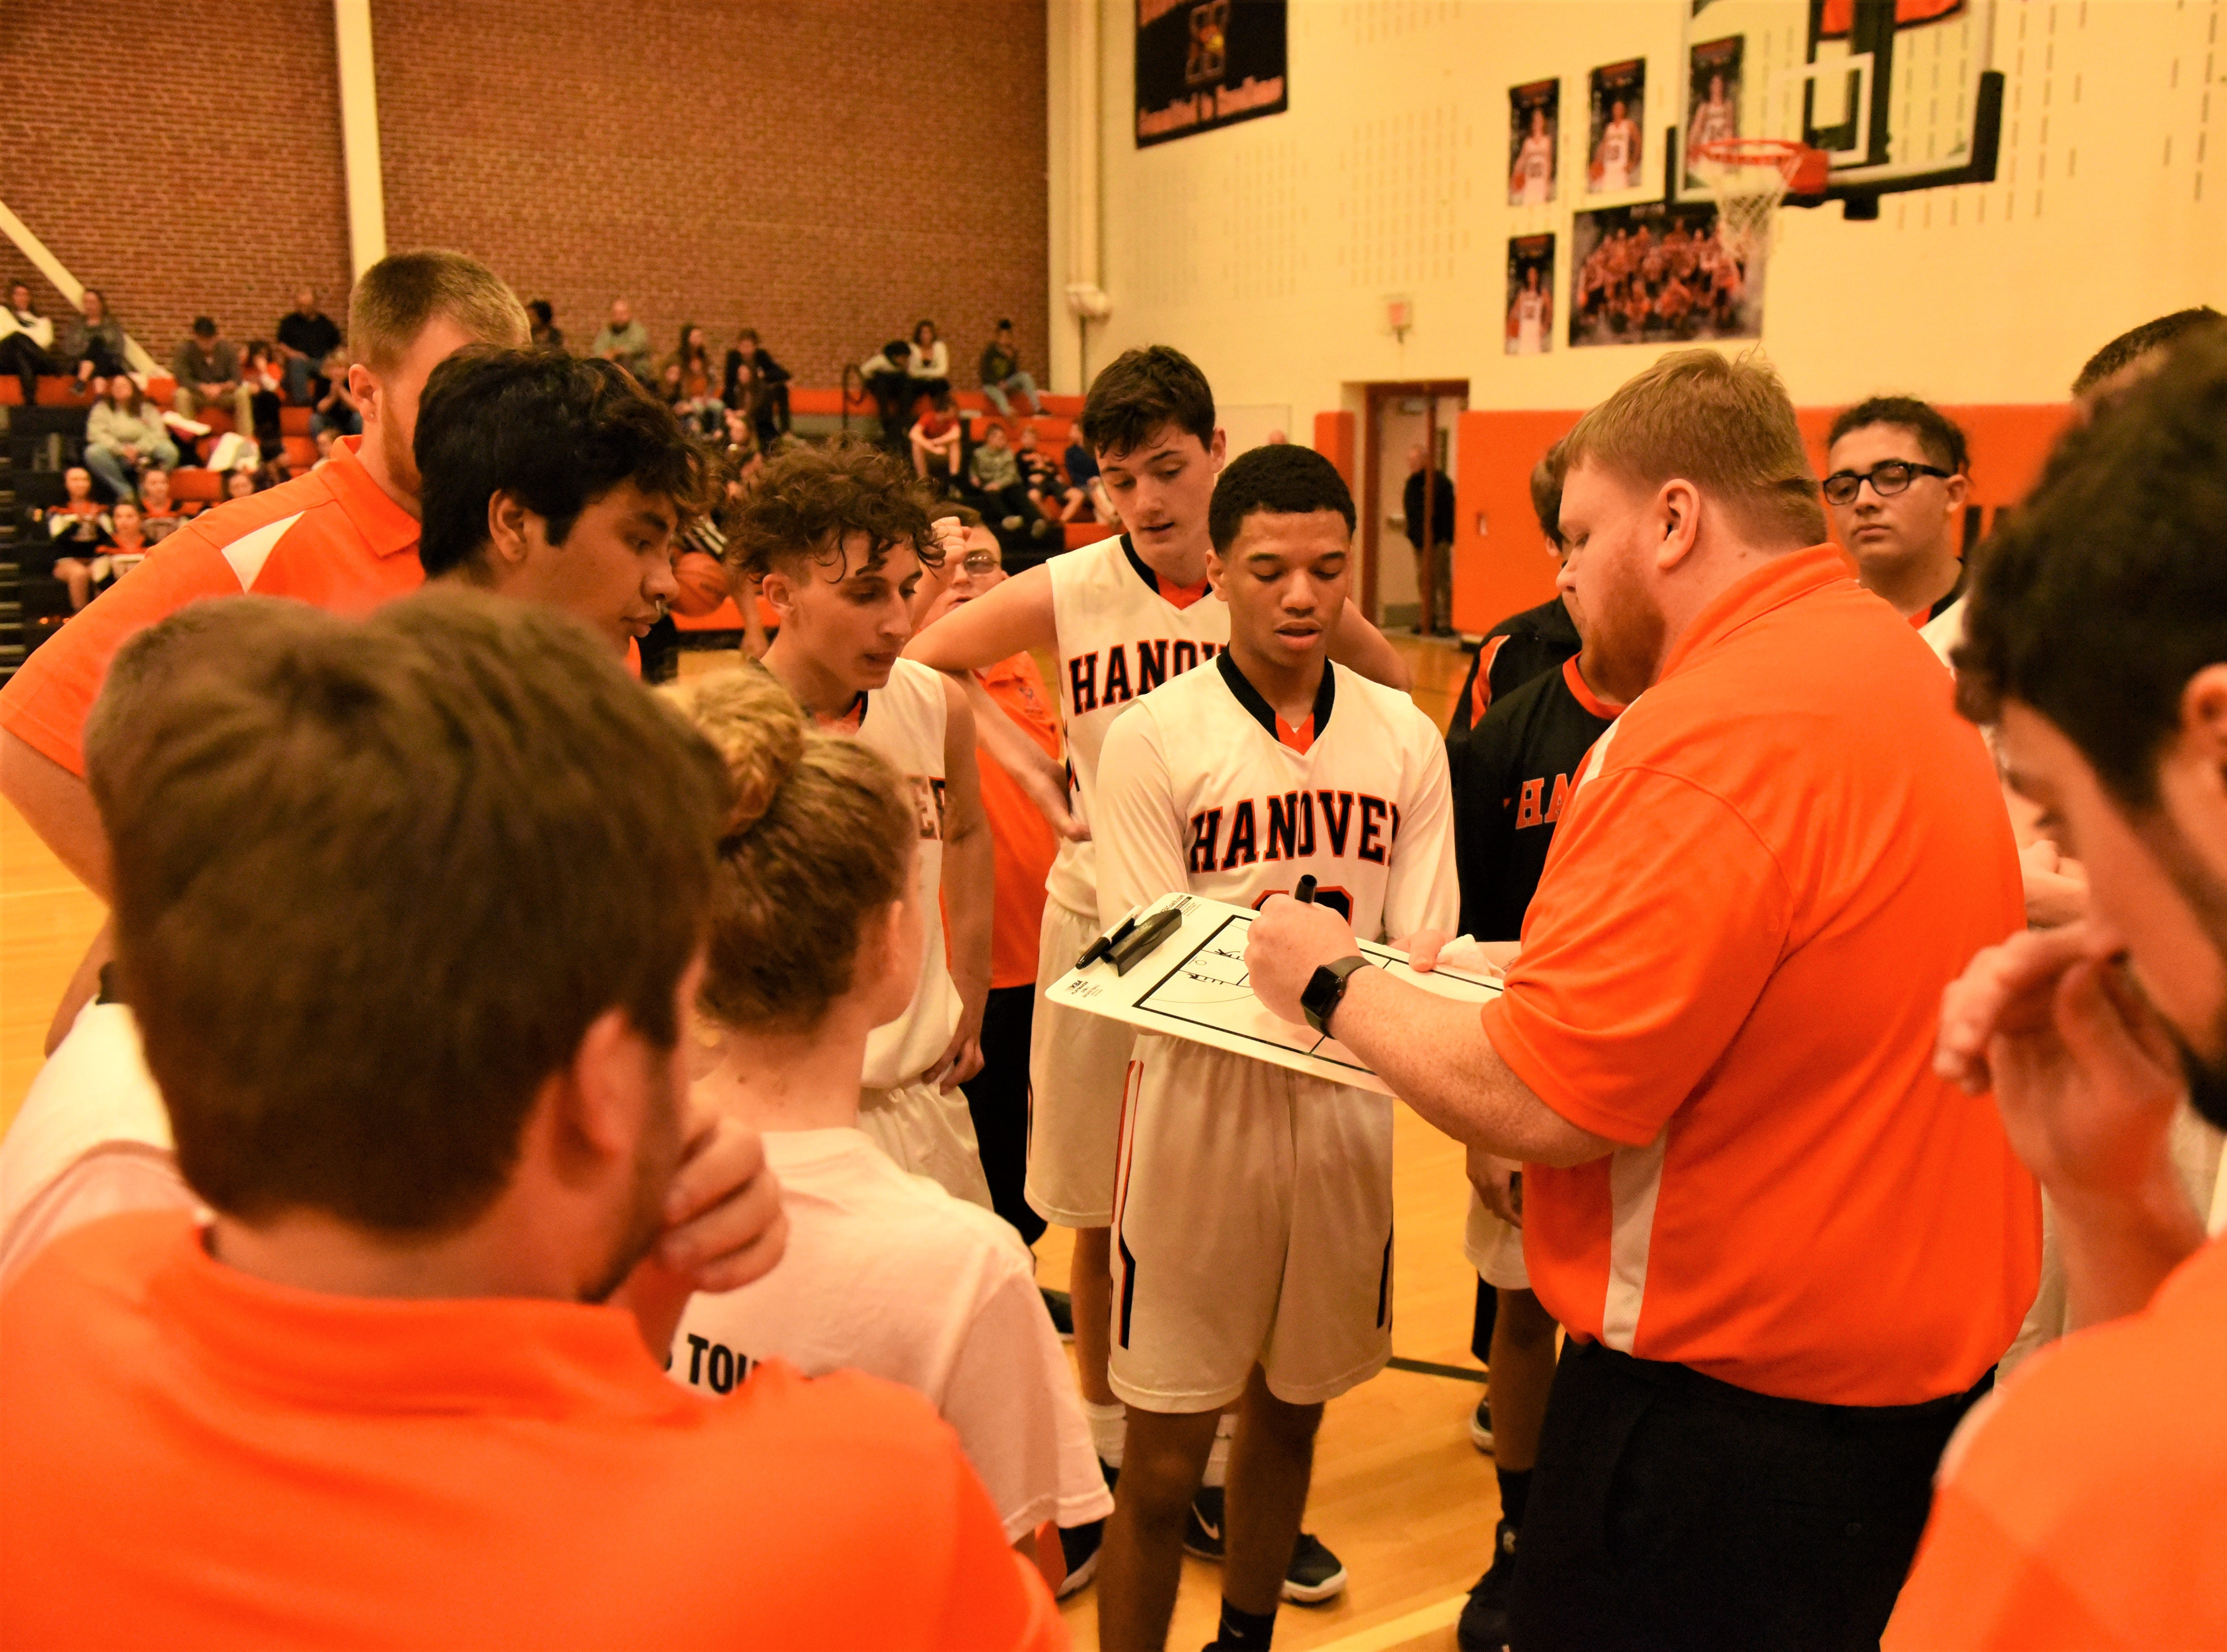 Coach Gibbon talks to the team during a time out. Fairfield High School lost at Hanover High School on Dec. 21, 57 to 43.